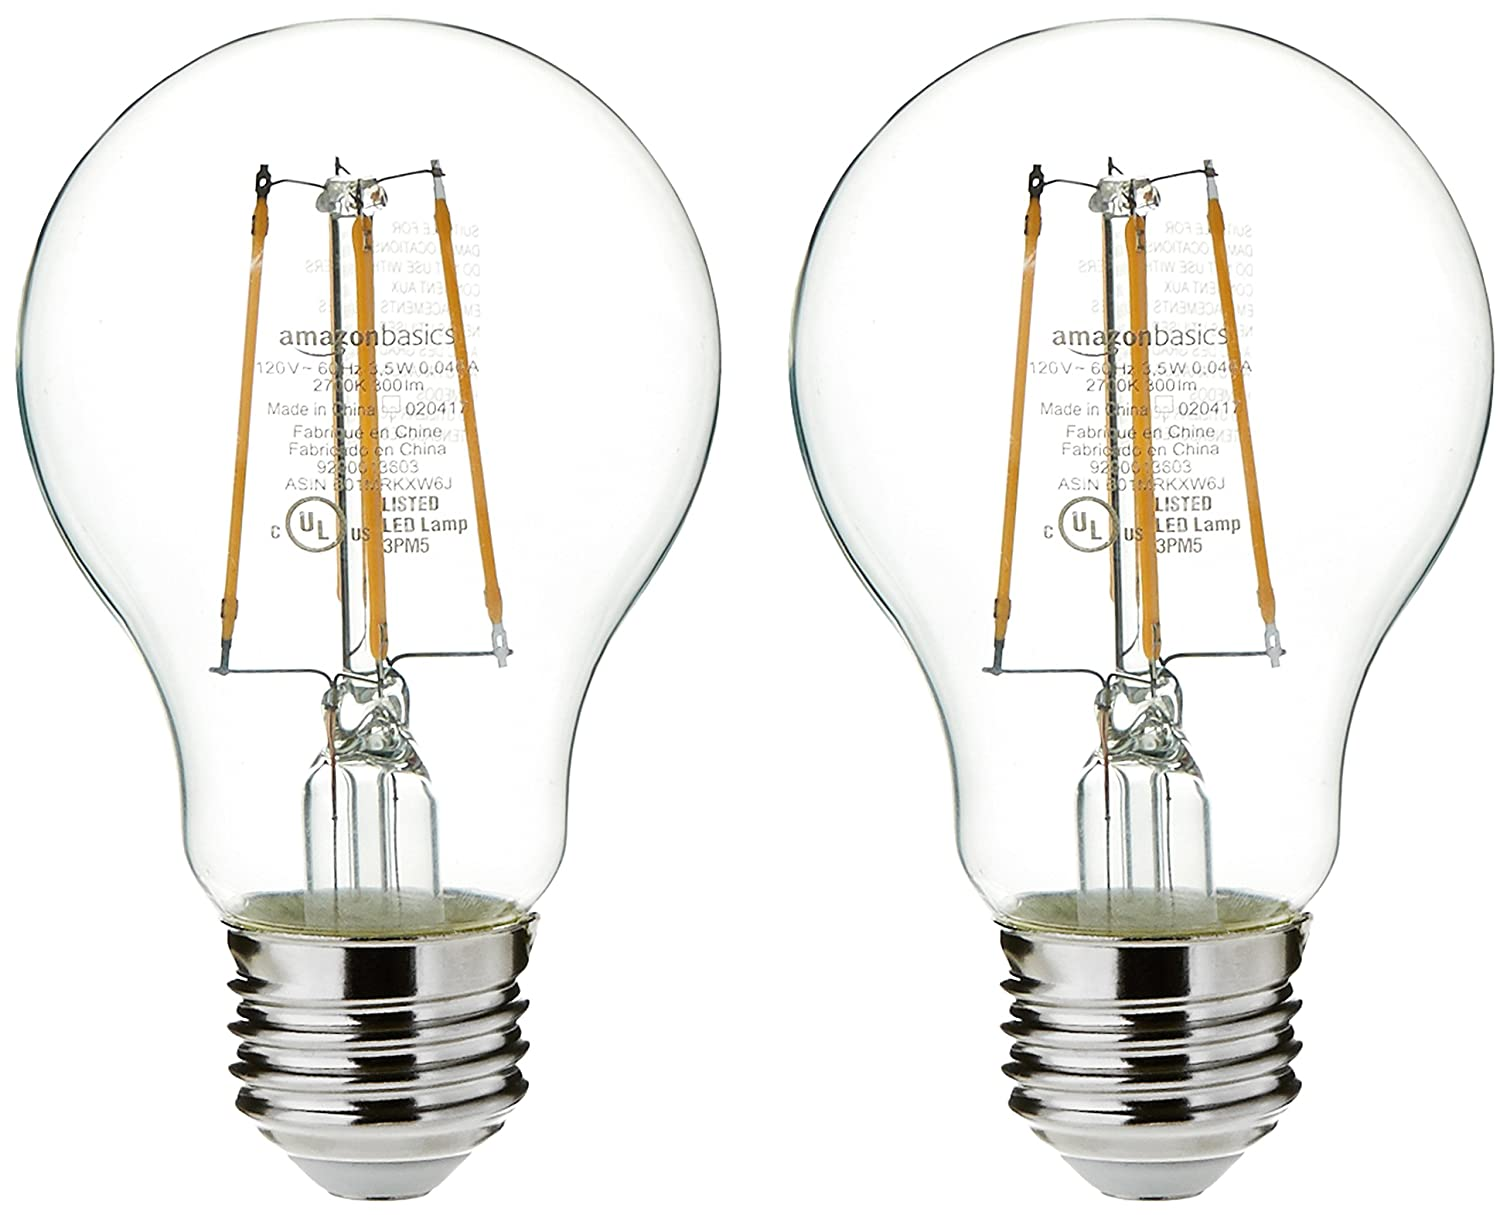 AmazonBasics 100 Watt Equivalent, Daylight, Non-Dimmable, A21 LED Light Bulb, 6-Pack 29